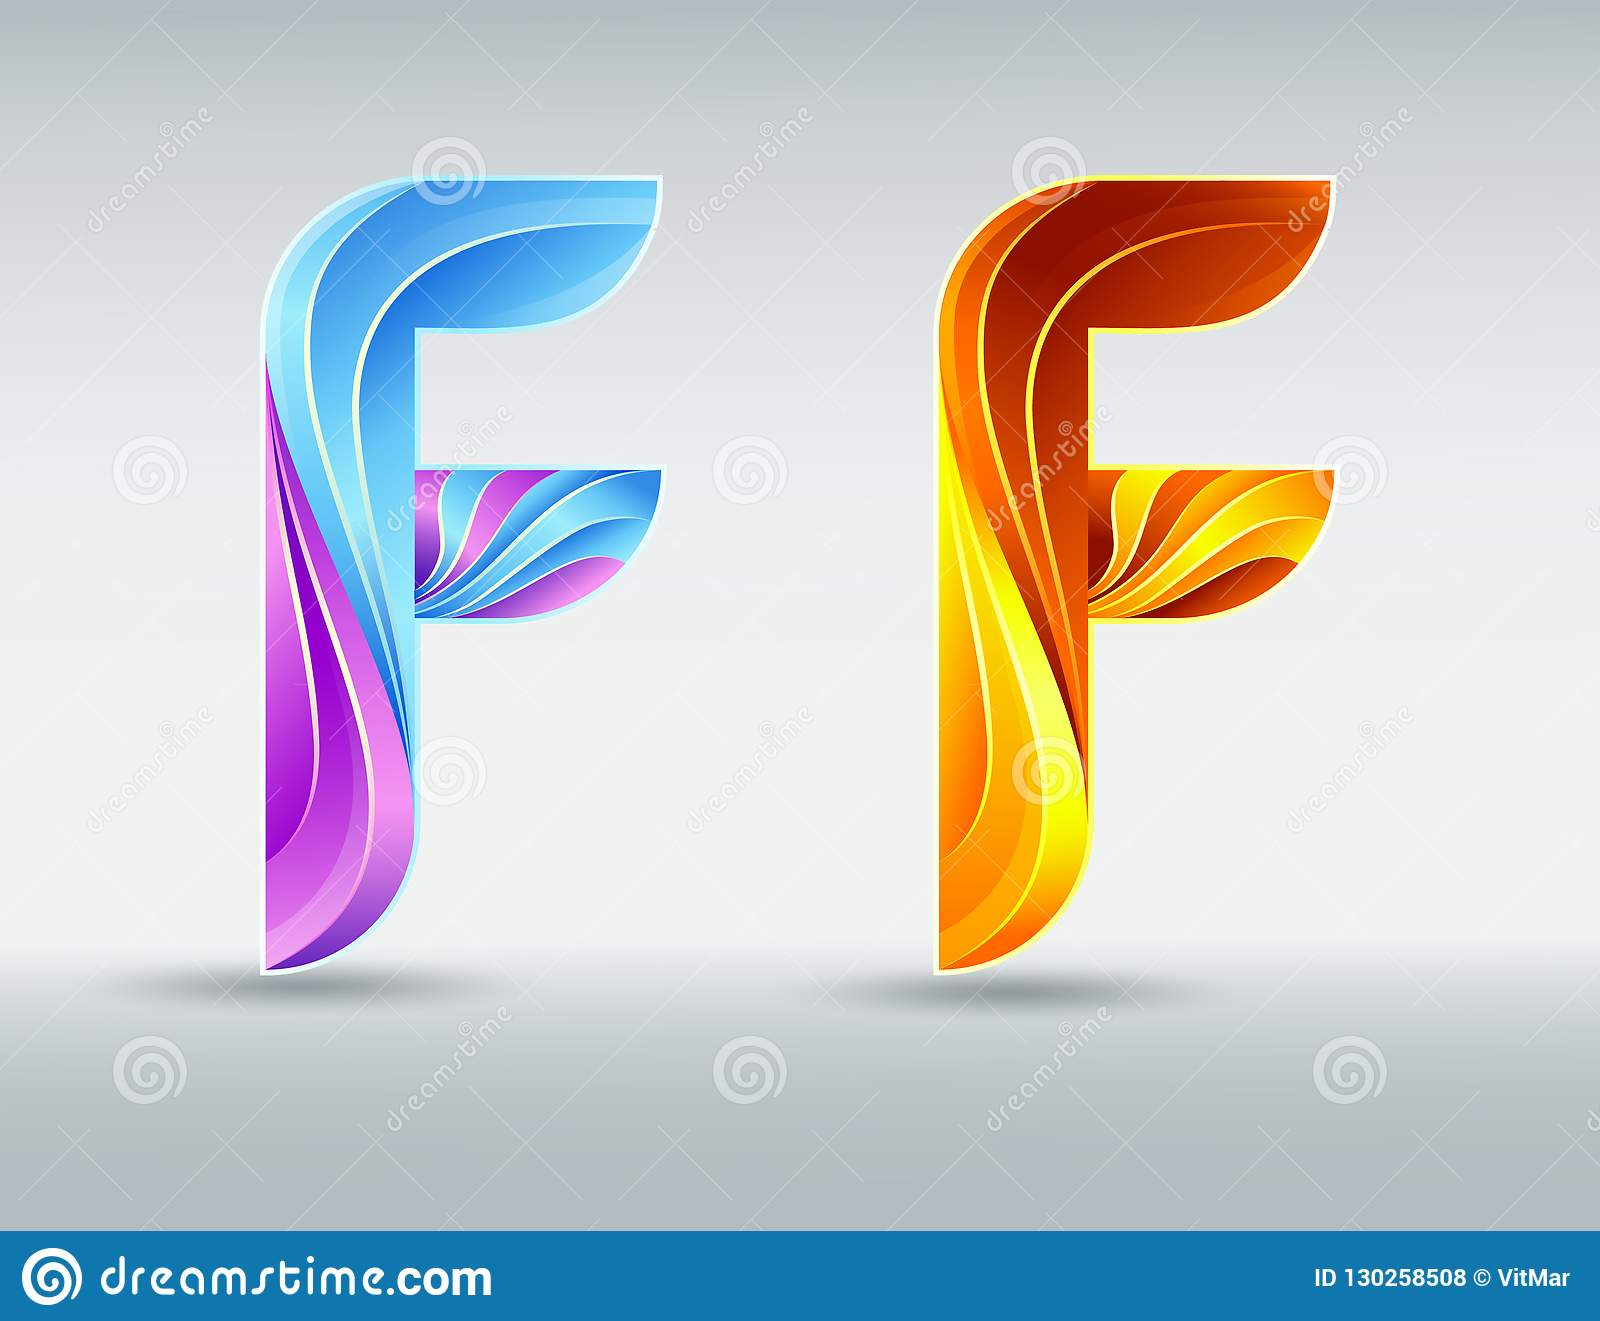 Fonts Logo  Creative Twisted Letter F  Abstract 3D Font  Caramel And